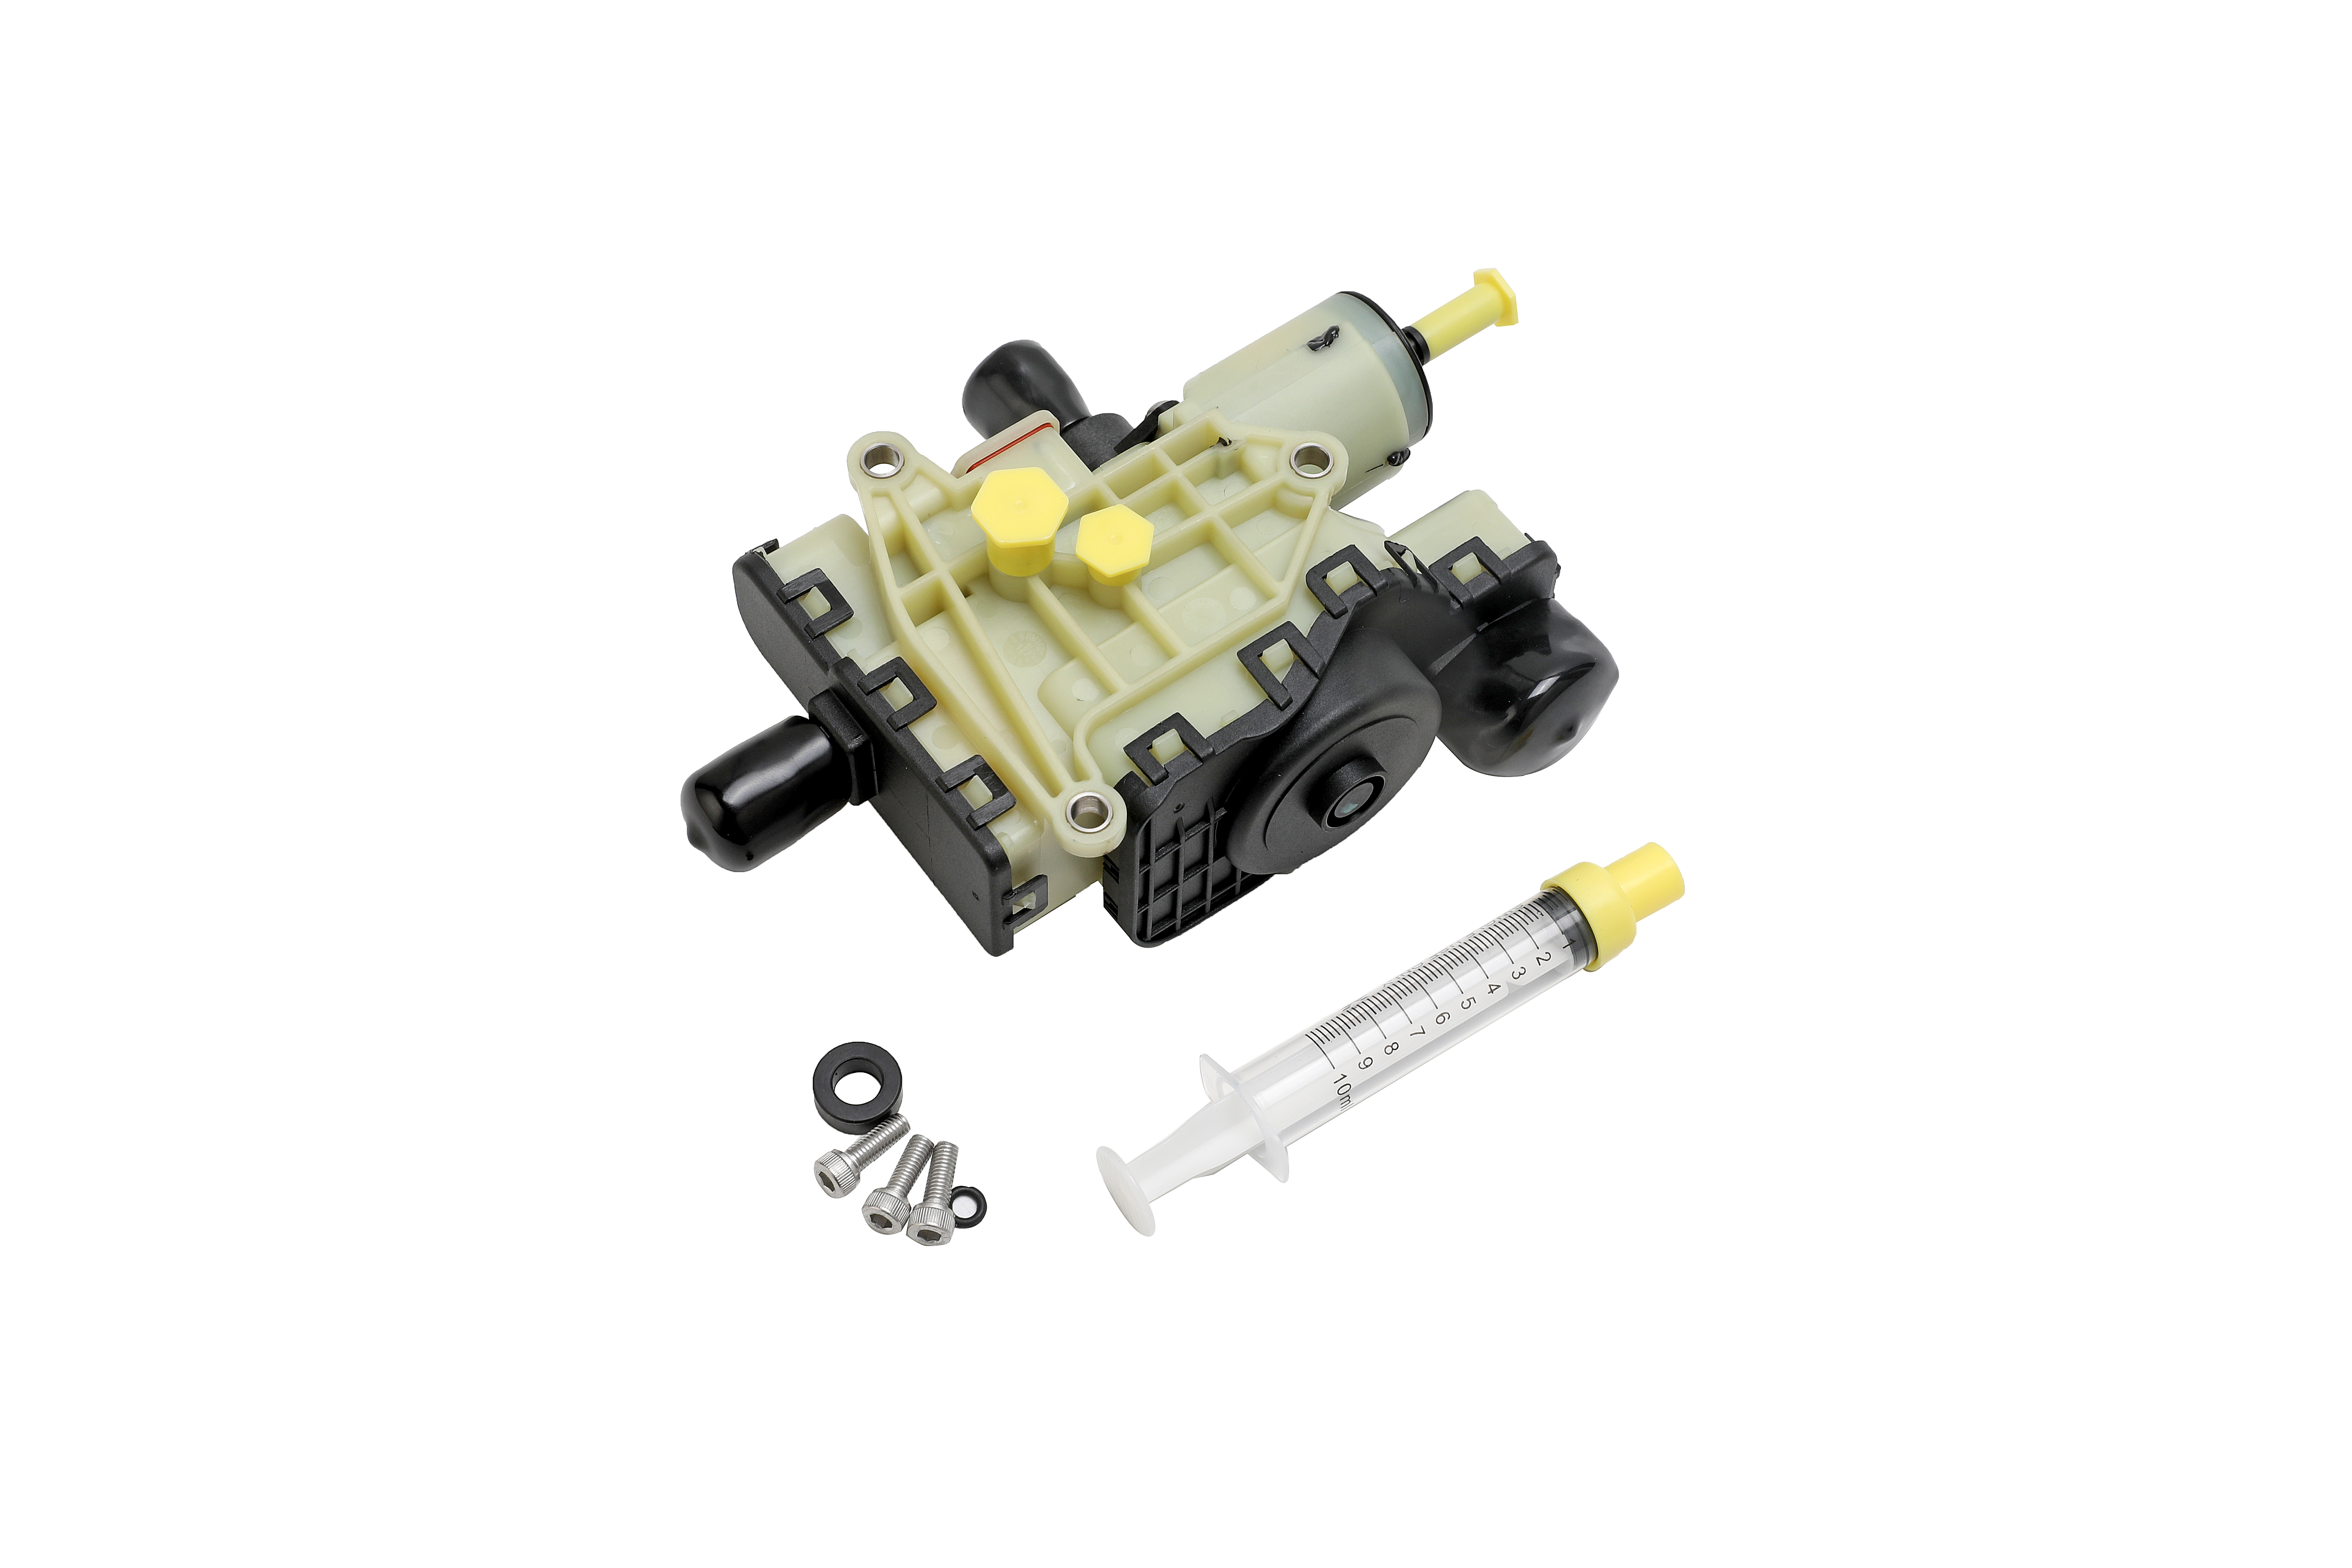 DEF Pump Kit - Fits Ford Powerstroke 6.7L, 3.2L - Replaces BC3Z5L227K, BC3Z5L229L Image